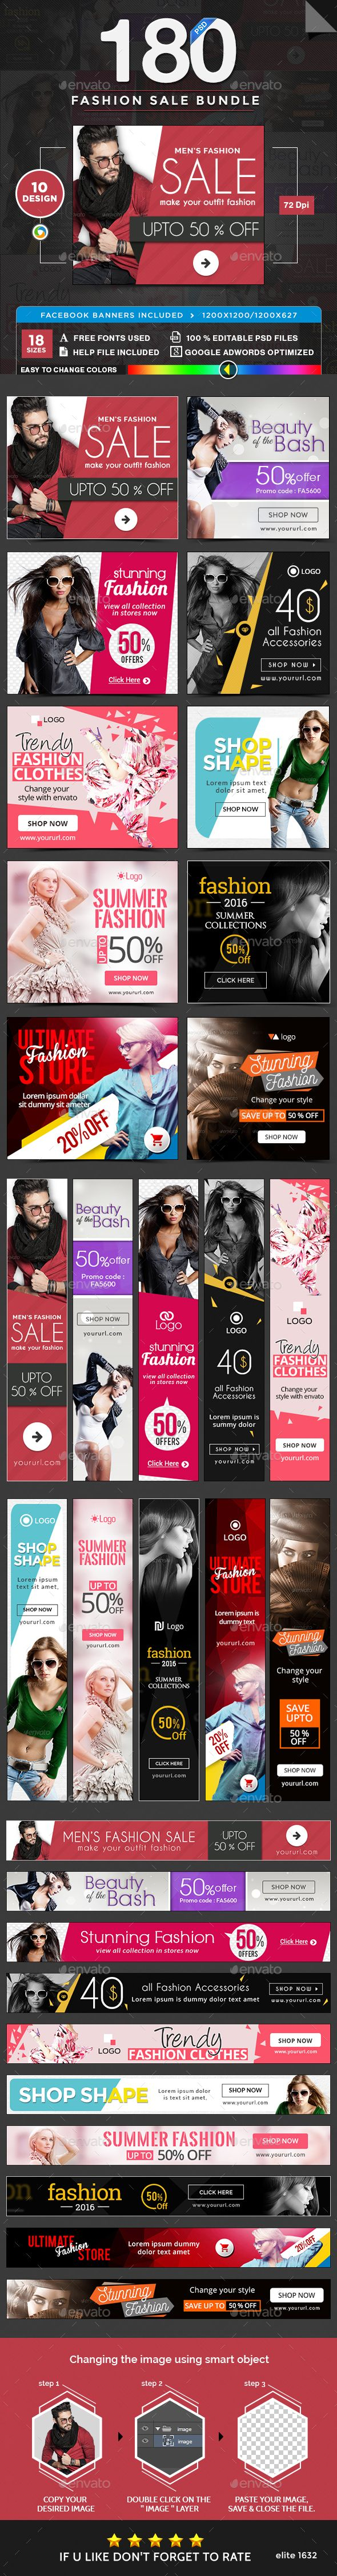 Fashion Sale Web Banners Bundle - 10 Sets - 180 Banners Templates PSD. Download here: http://graphicriver.net/item/fashion-sale-banners-bundle-10-sets-180-banners/16936145?ref=ksioks